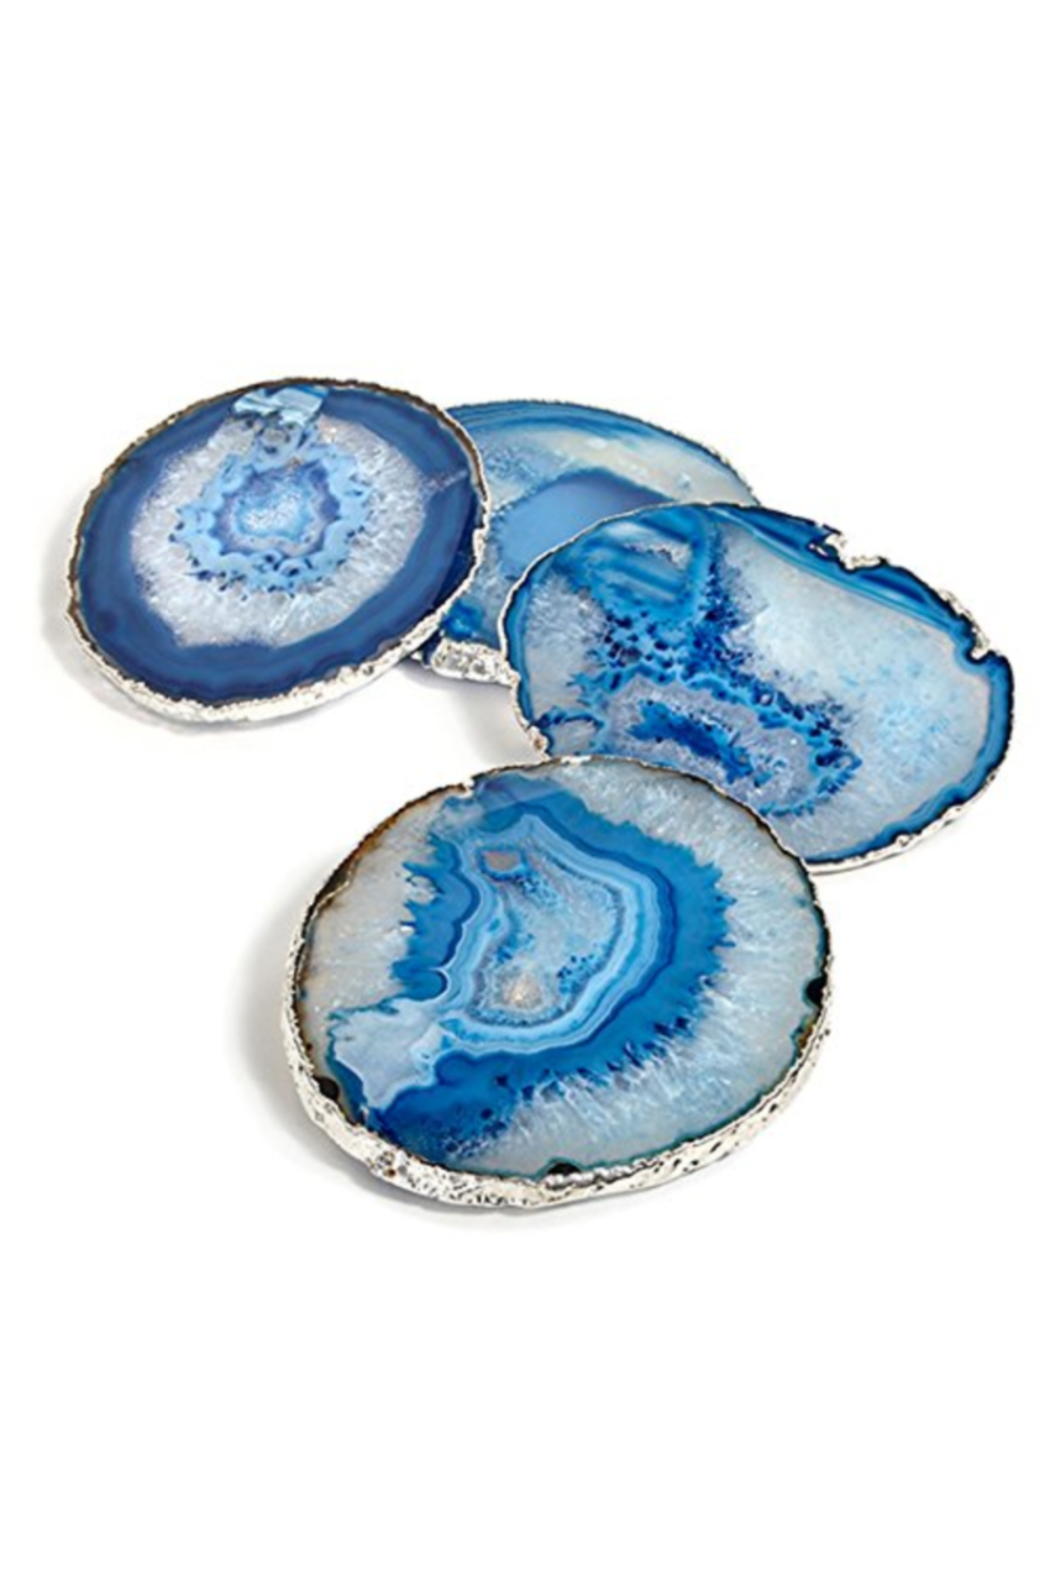 The Birds Nest LUMINO COASTERS - AZURE/SILVER (S/4) - Main Image